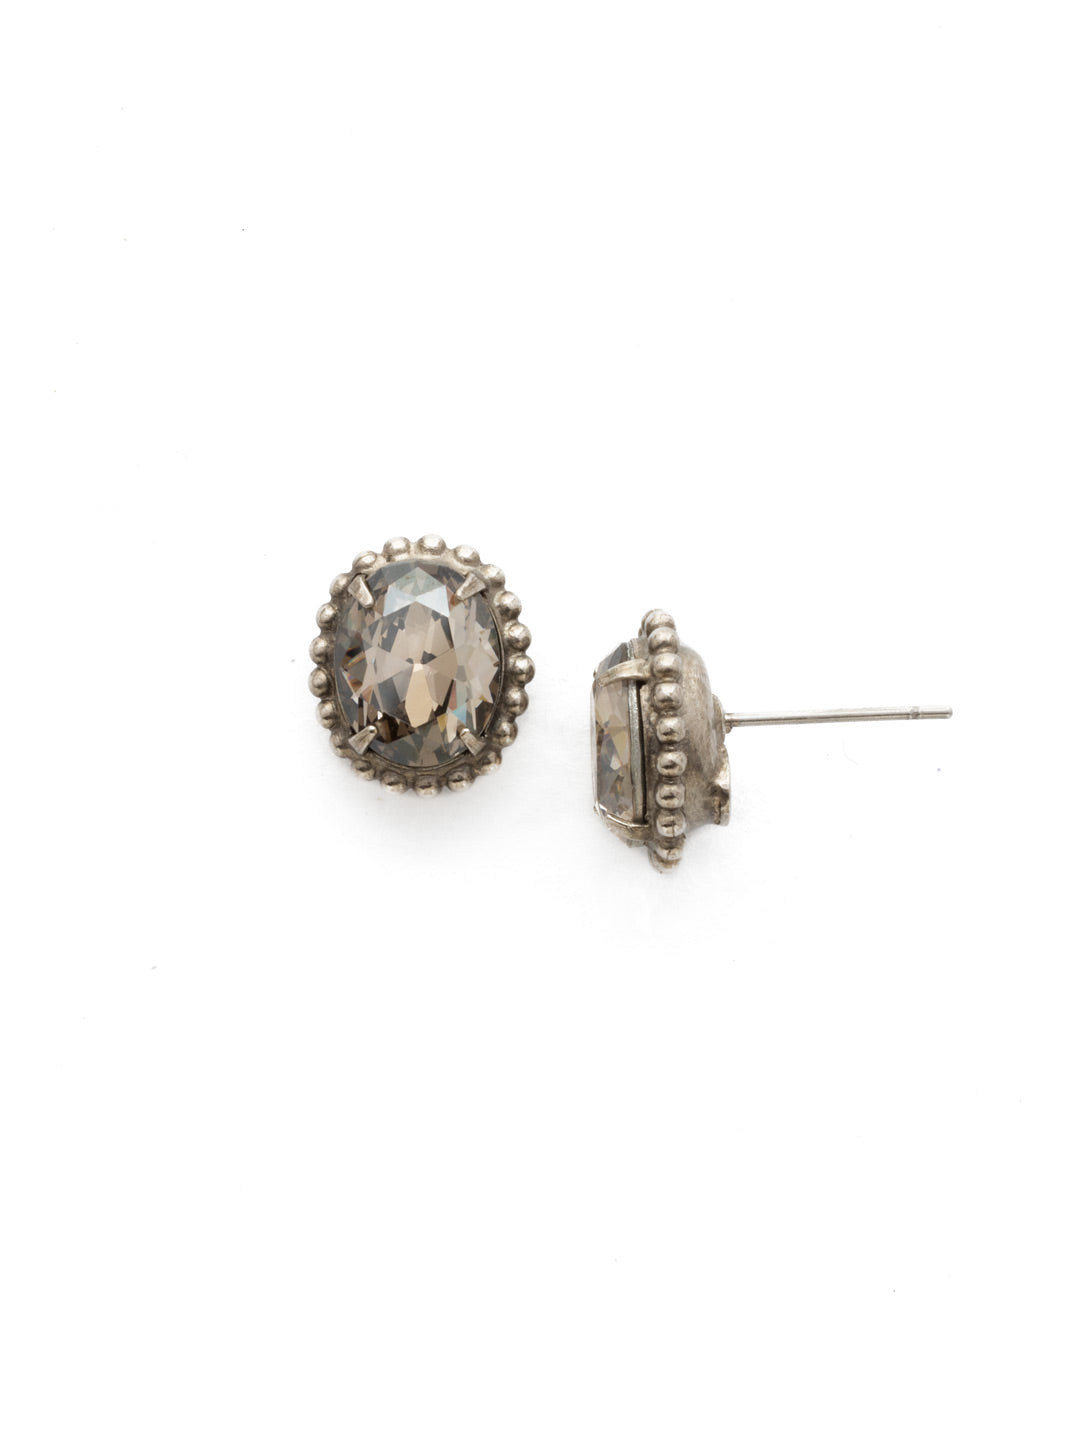 Oval-Cut Solitaire Stud Earrings - EDQ10ASCRO